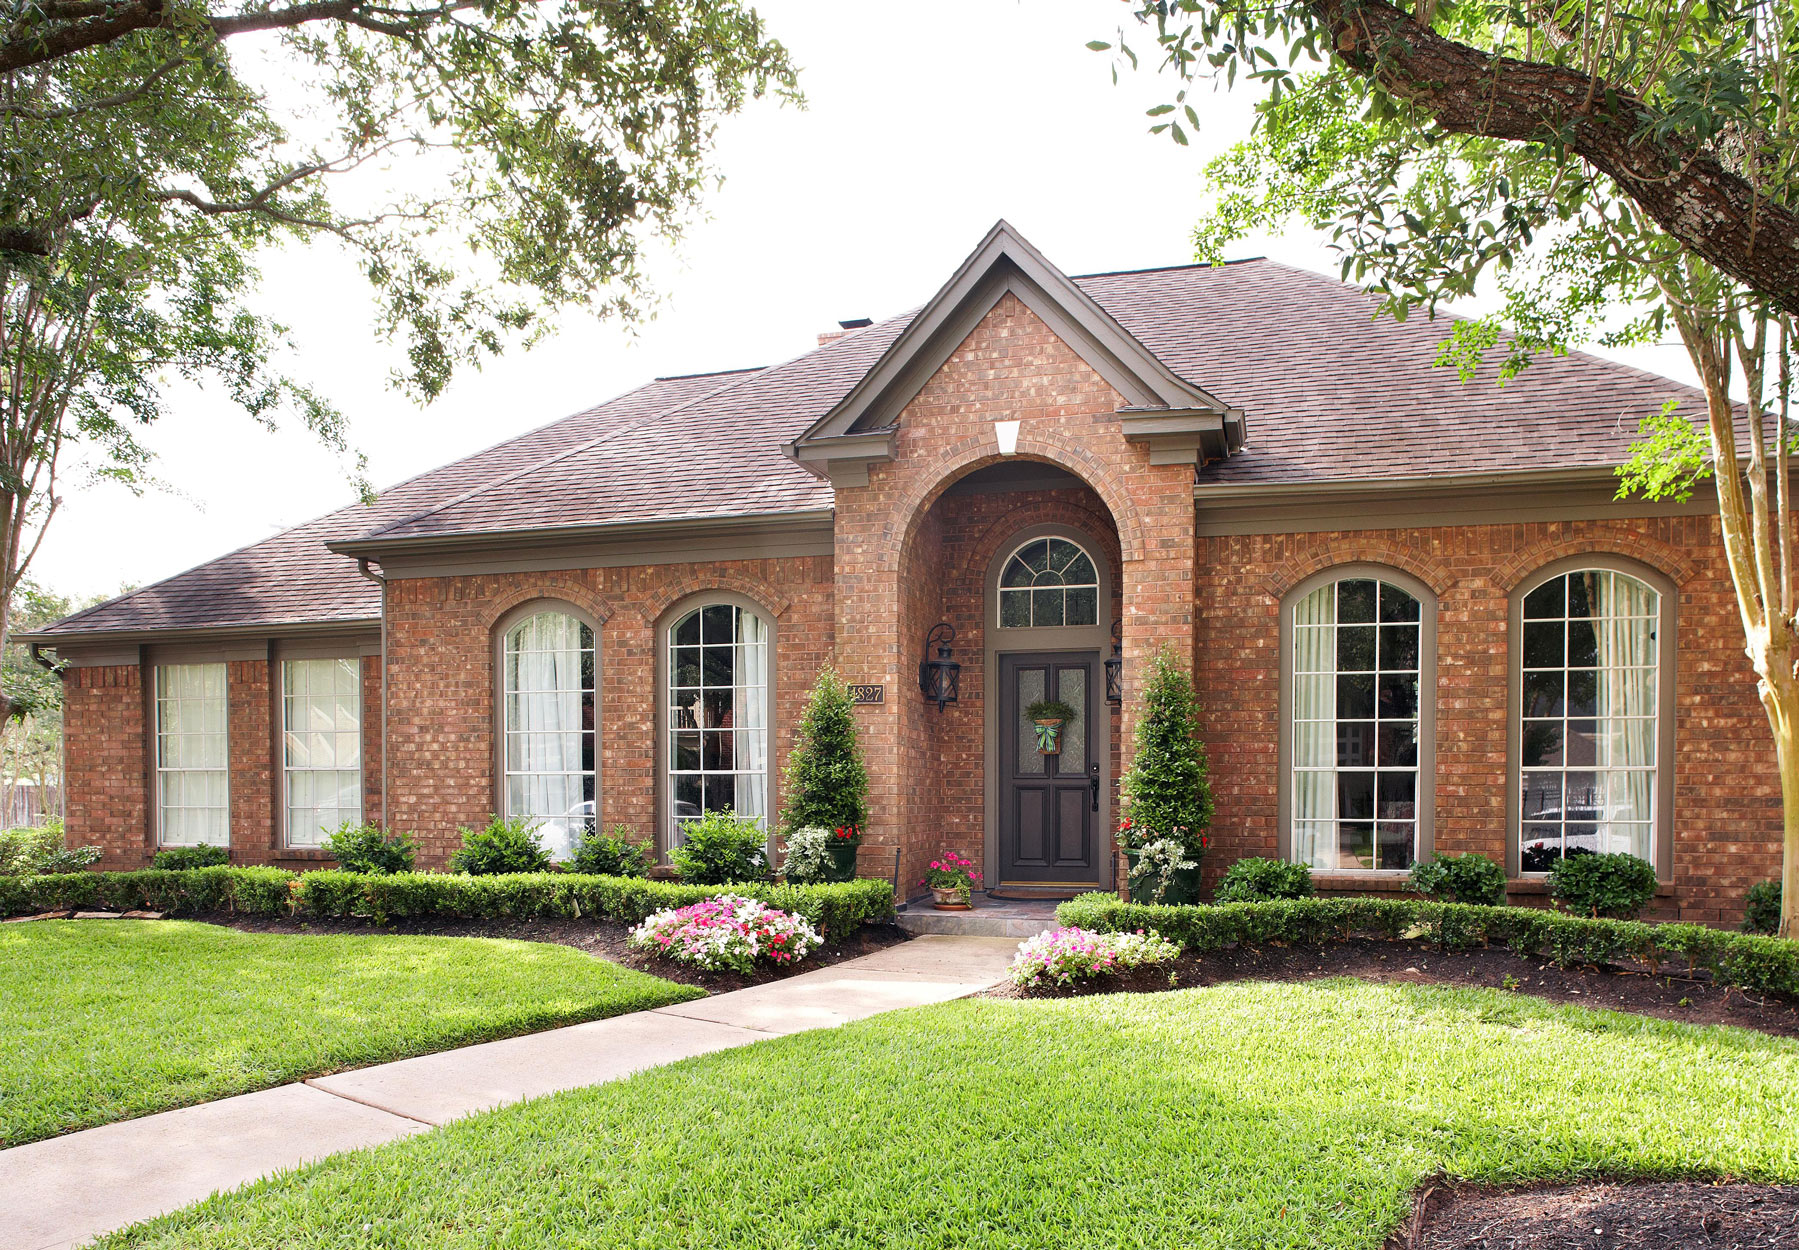 warm brick ranch exterior rounded windows